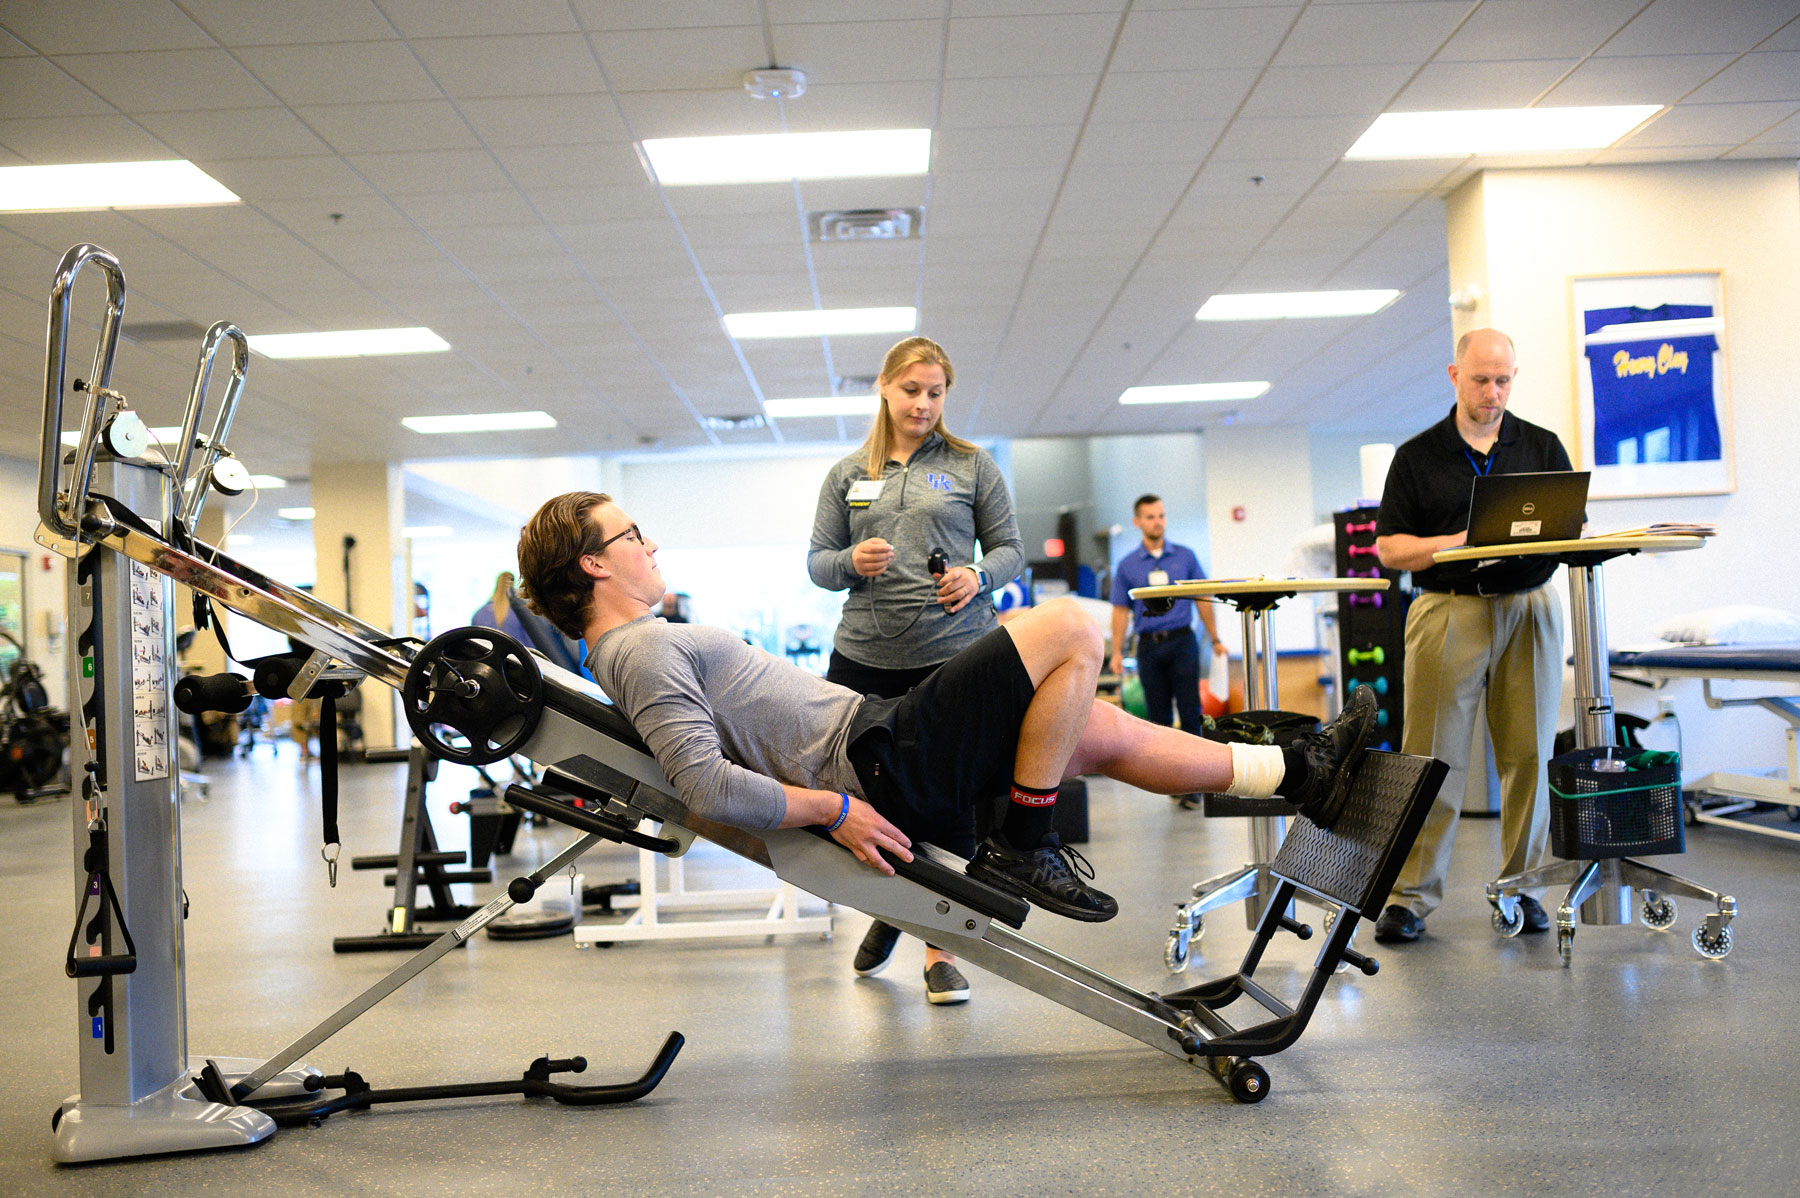 Peter performs his physical therapy exercises while one of his therapists watches.